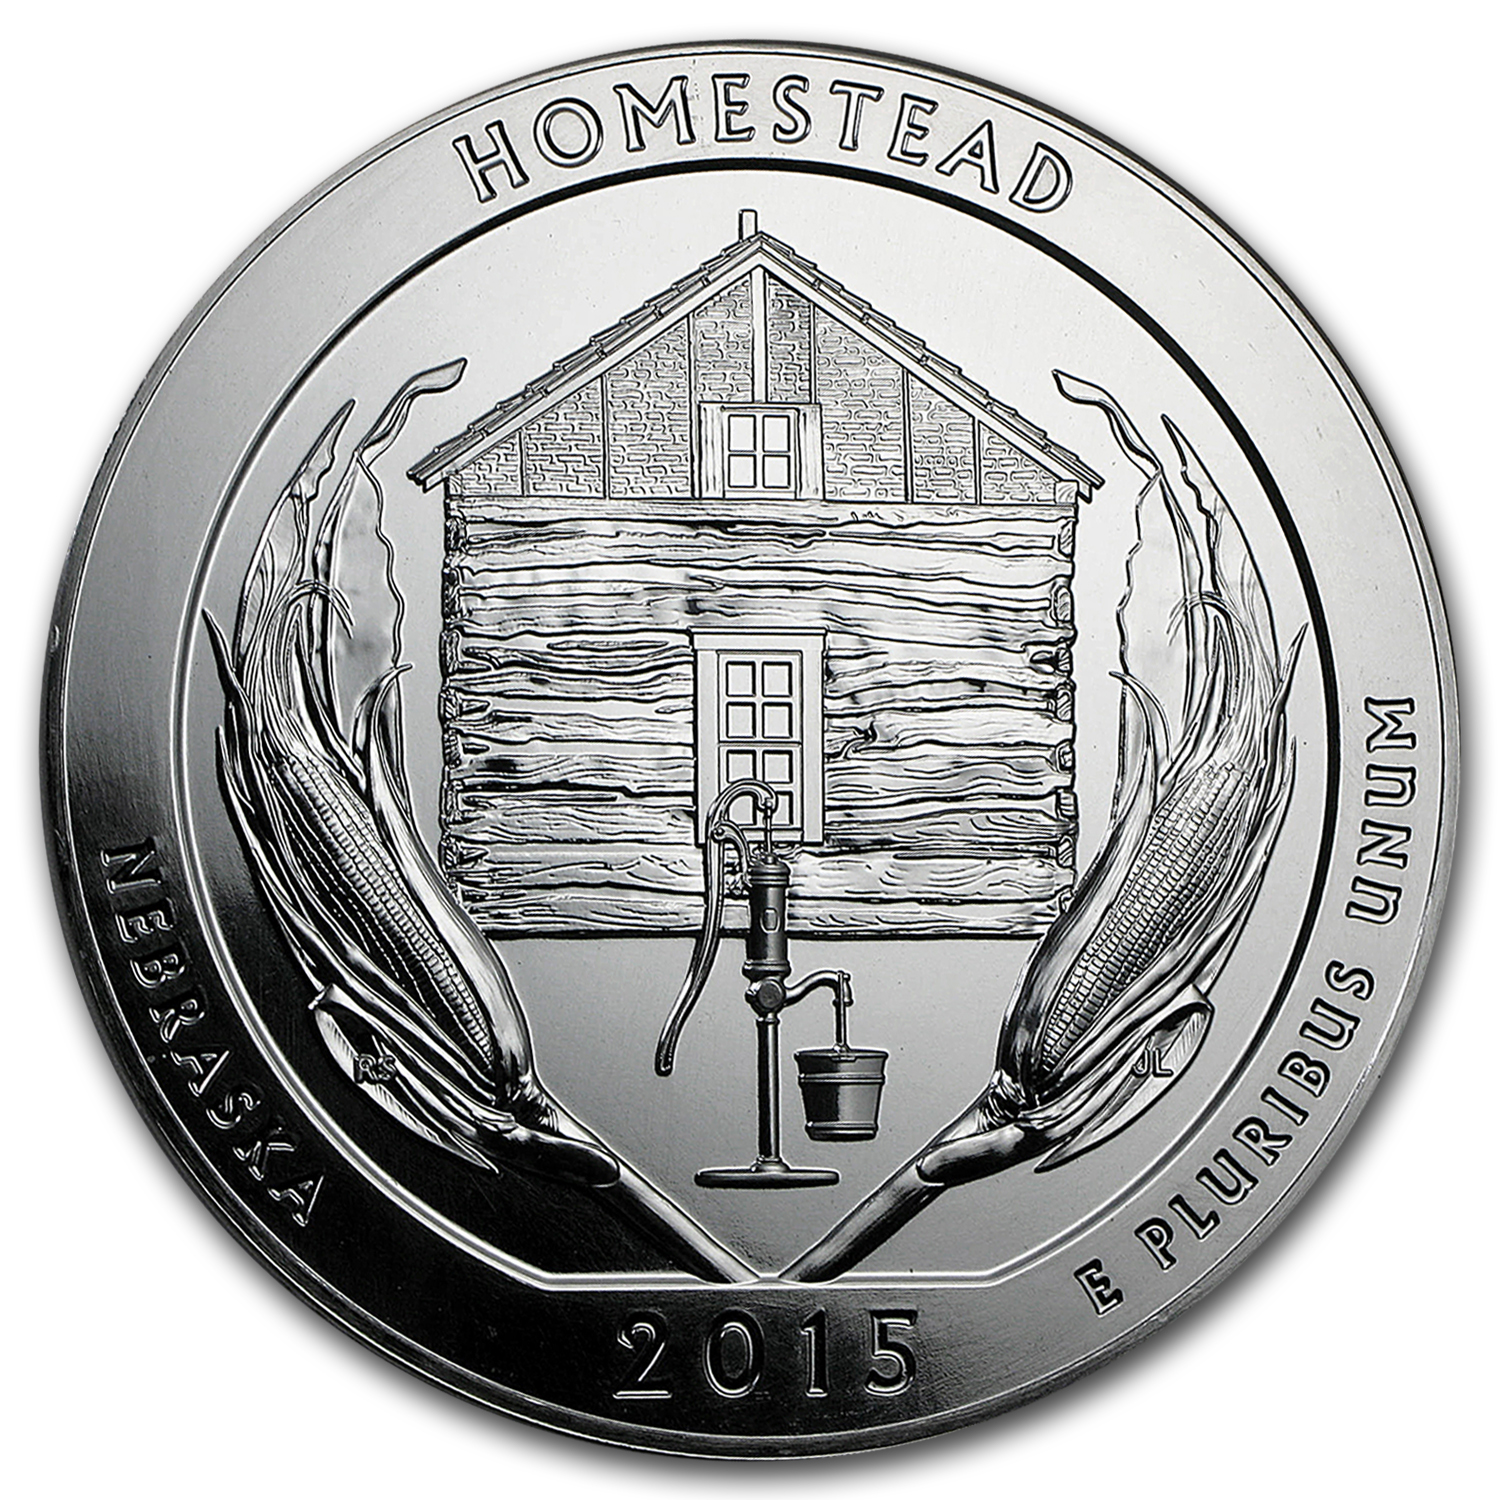 2015 5 oz Silver America the Beautiful ATB Nebraska Homestead National